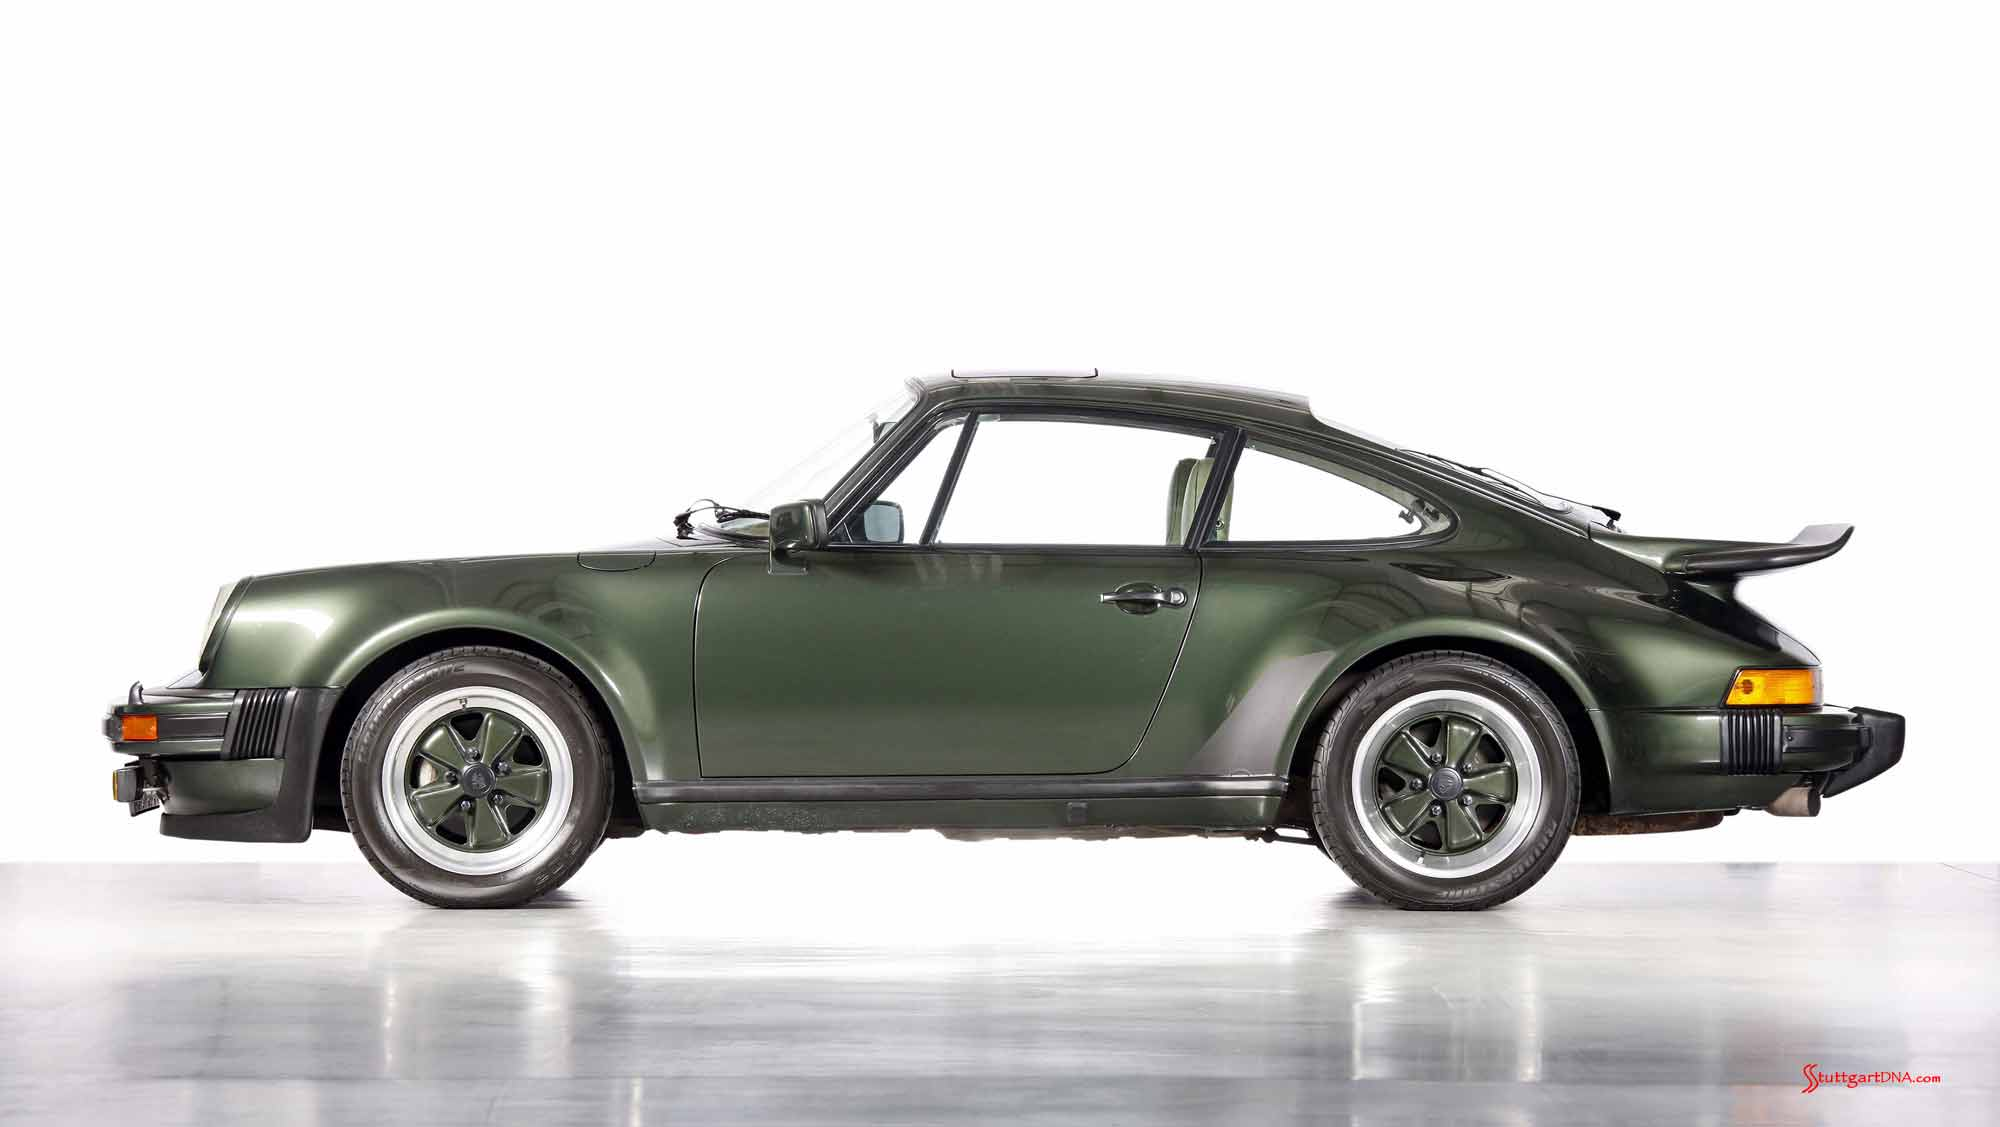 How to choose the best car insurance - Porsche supercars: 911 Turbo, 1973, right side. Credit: Porsche AG